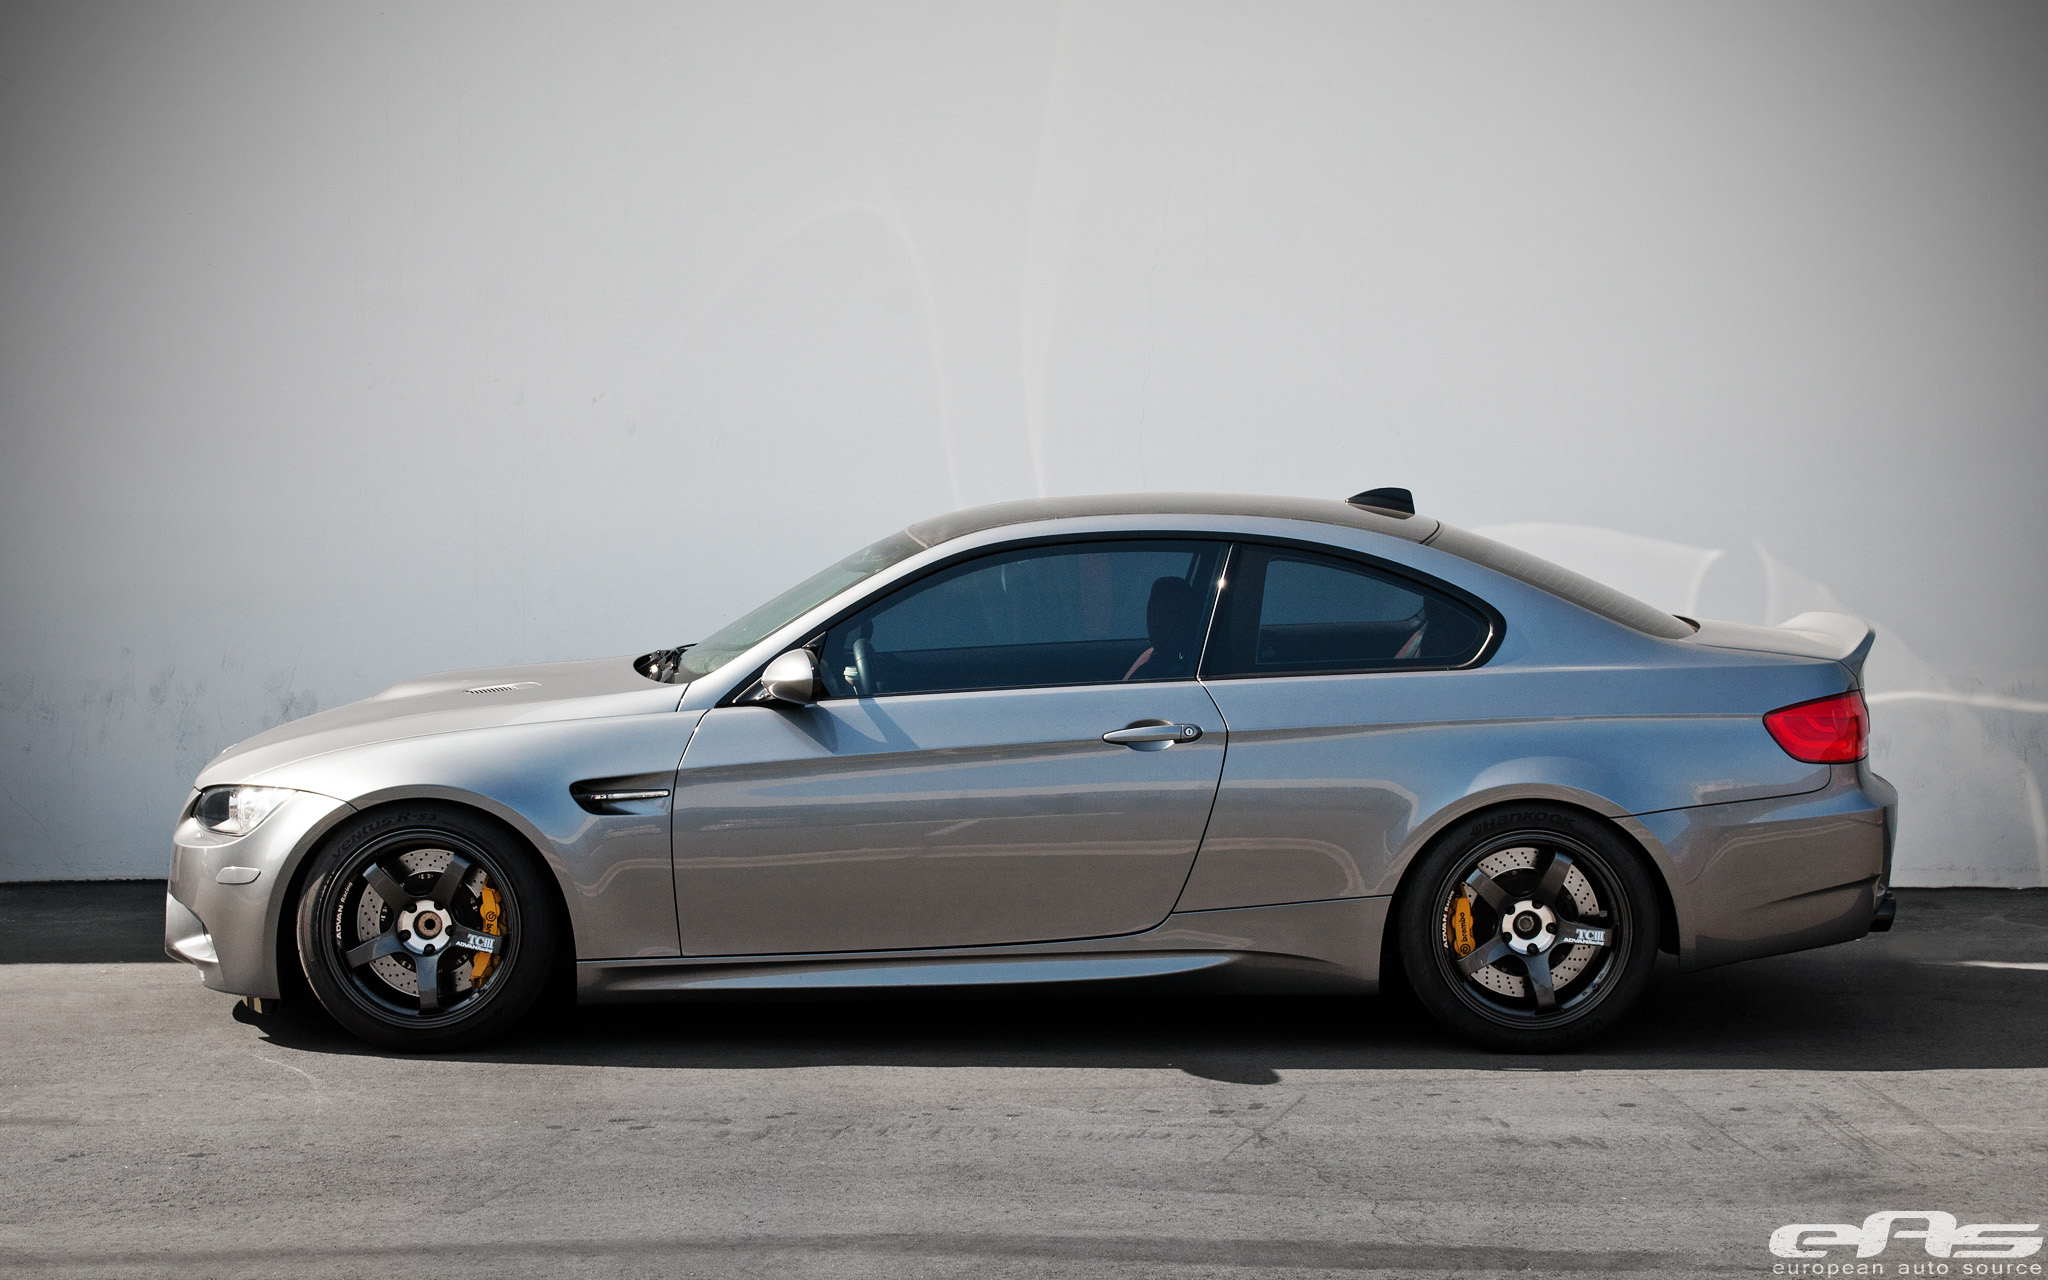 Space Gray BMW E92 M3 ADVAN TCIII Wheels Yellow Brembo Brakes by eas